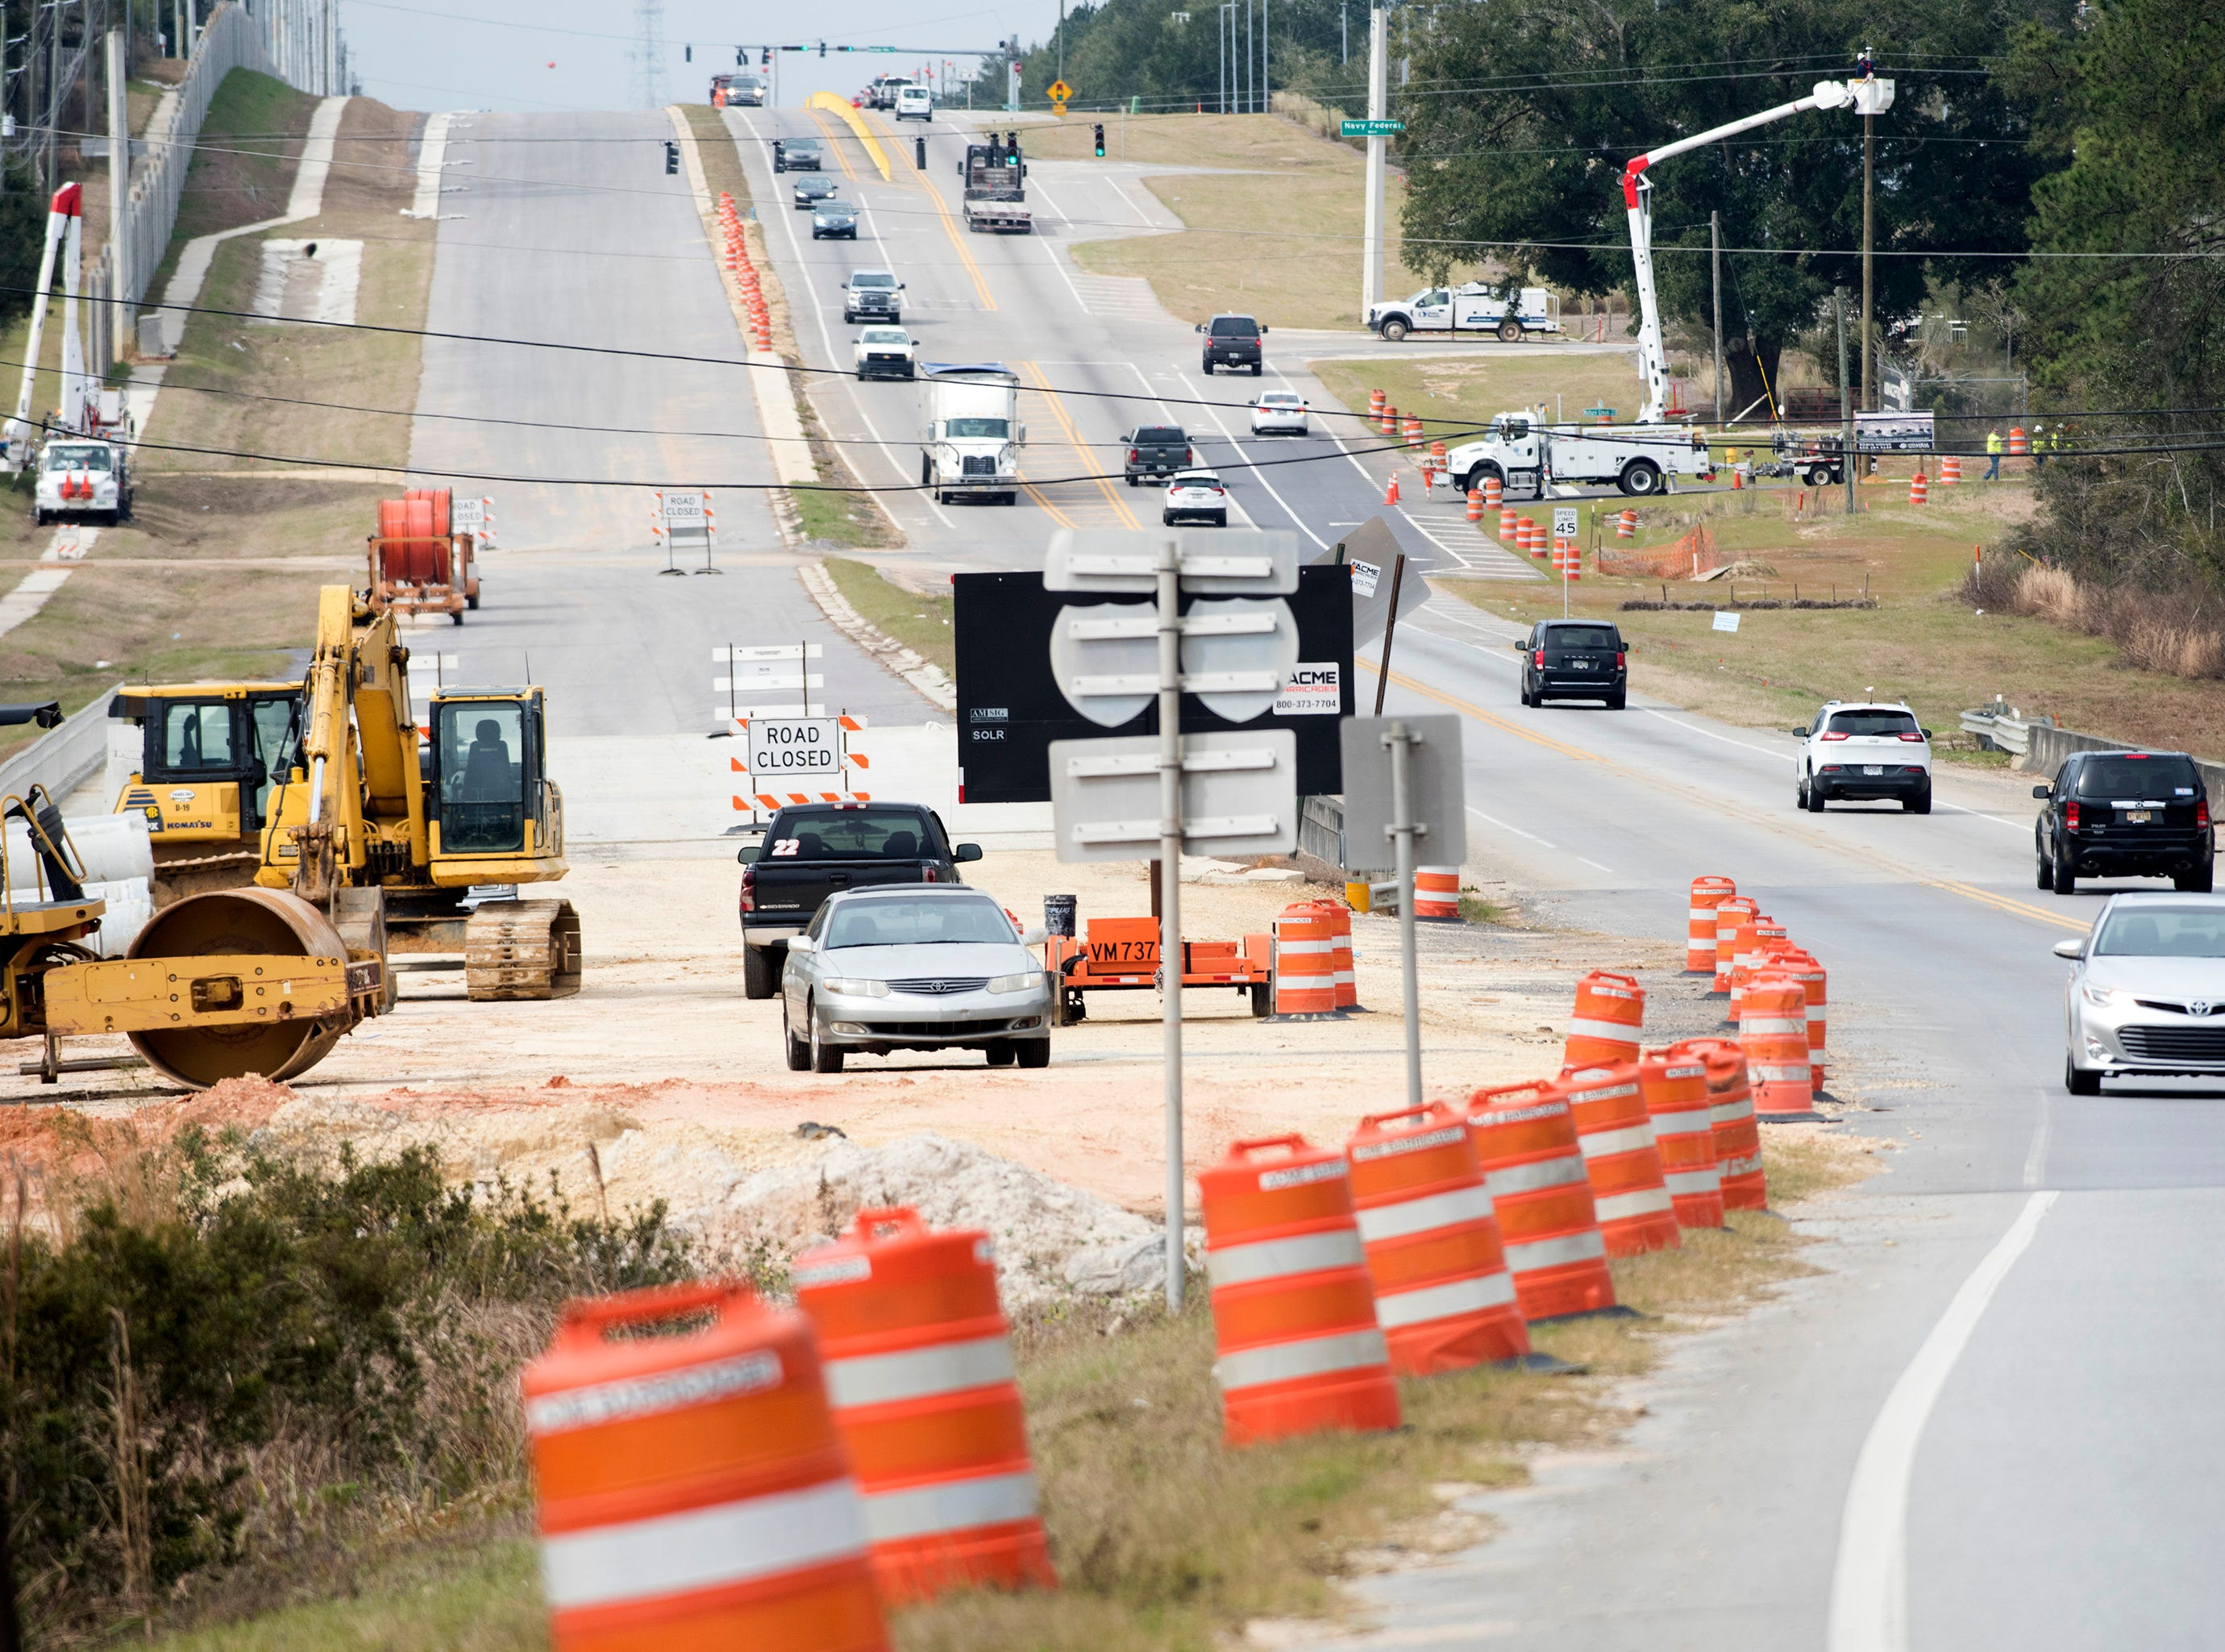 Construction on Nine Mile Road continues on Friday, Feb. 1, 2019.  The Florida Department of Transportation estimates the portion of Nine Mile between Beulah Road and Interstate 10 will be complete by the end of 2019. The entire $46 million project runs from Beulah Road to U.S. Highway 29, and won't be entirely complete until 2020.